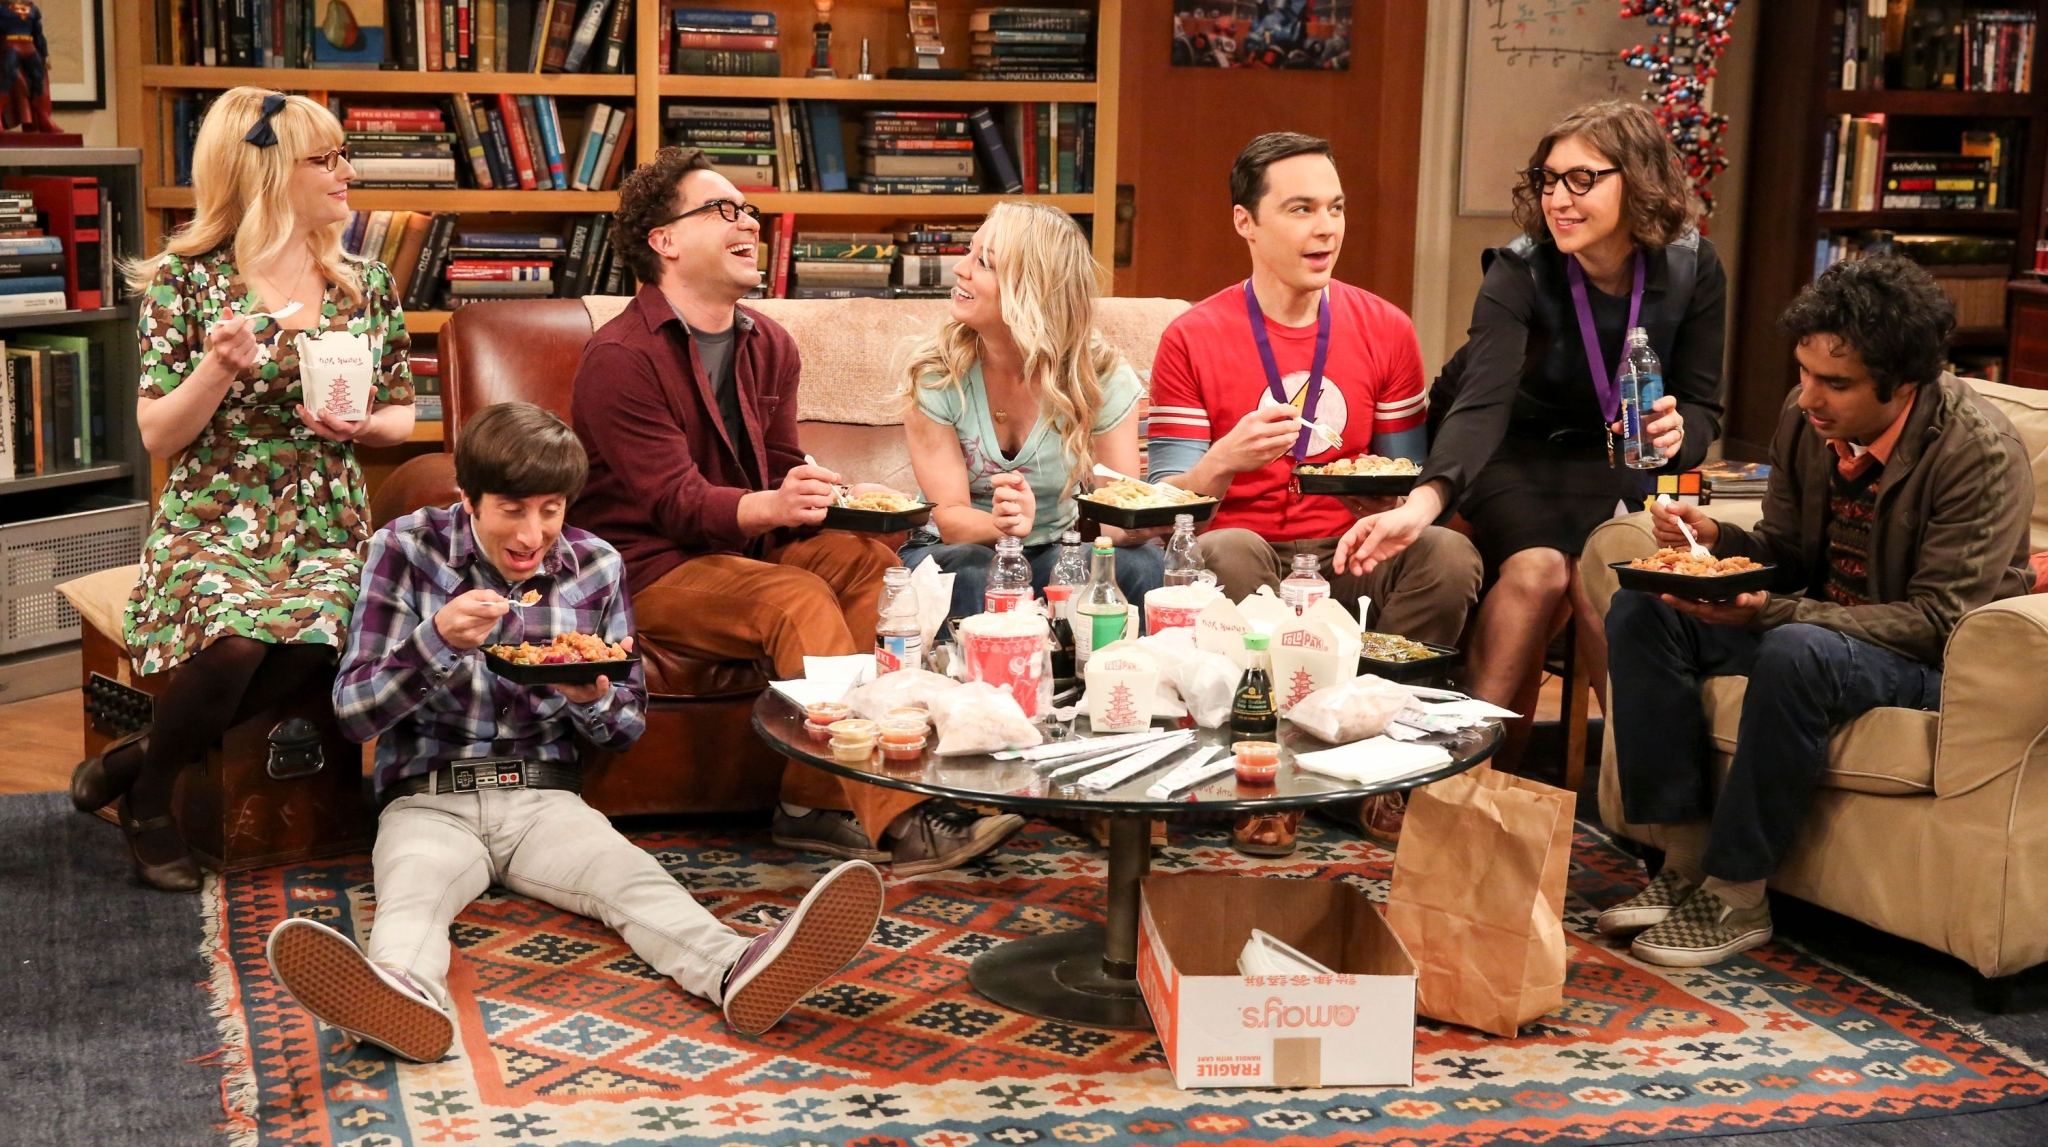 Review: 'The Big Bang Theory' Finale Was About Continuity & Change